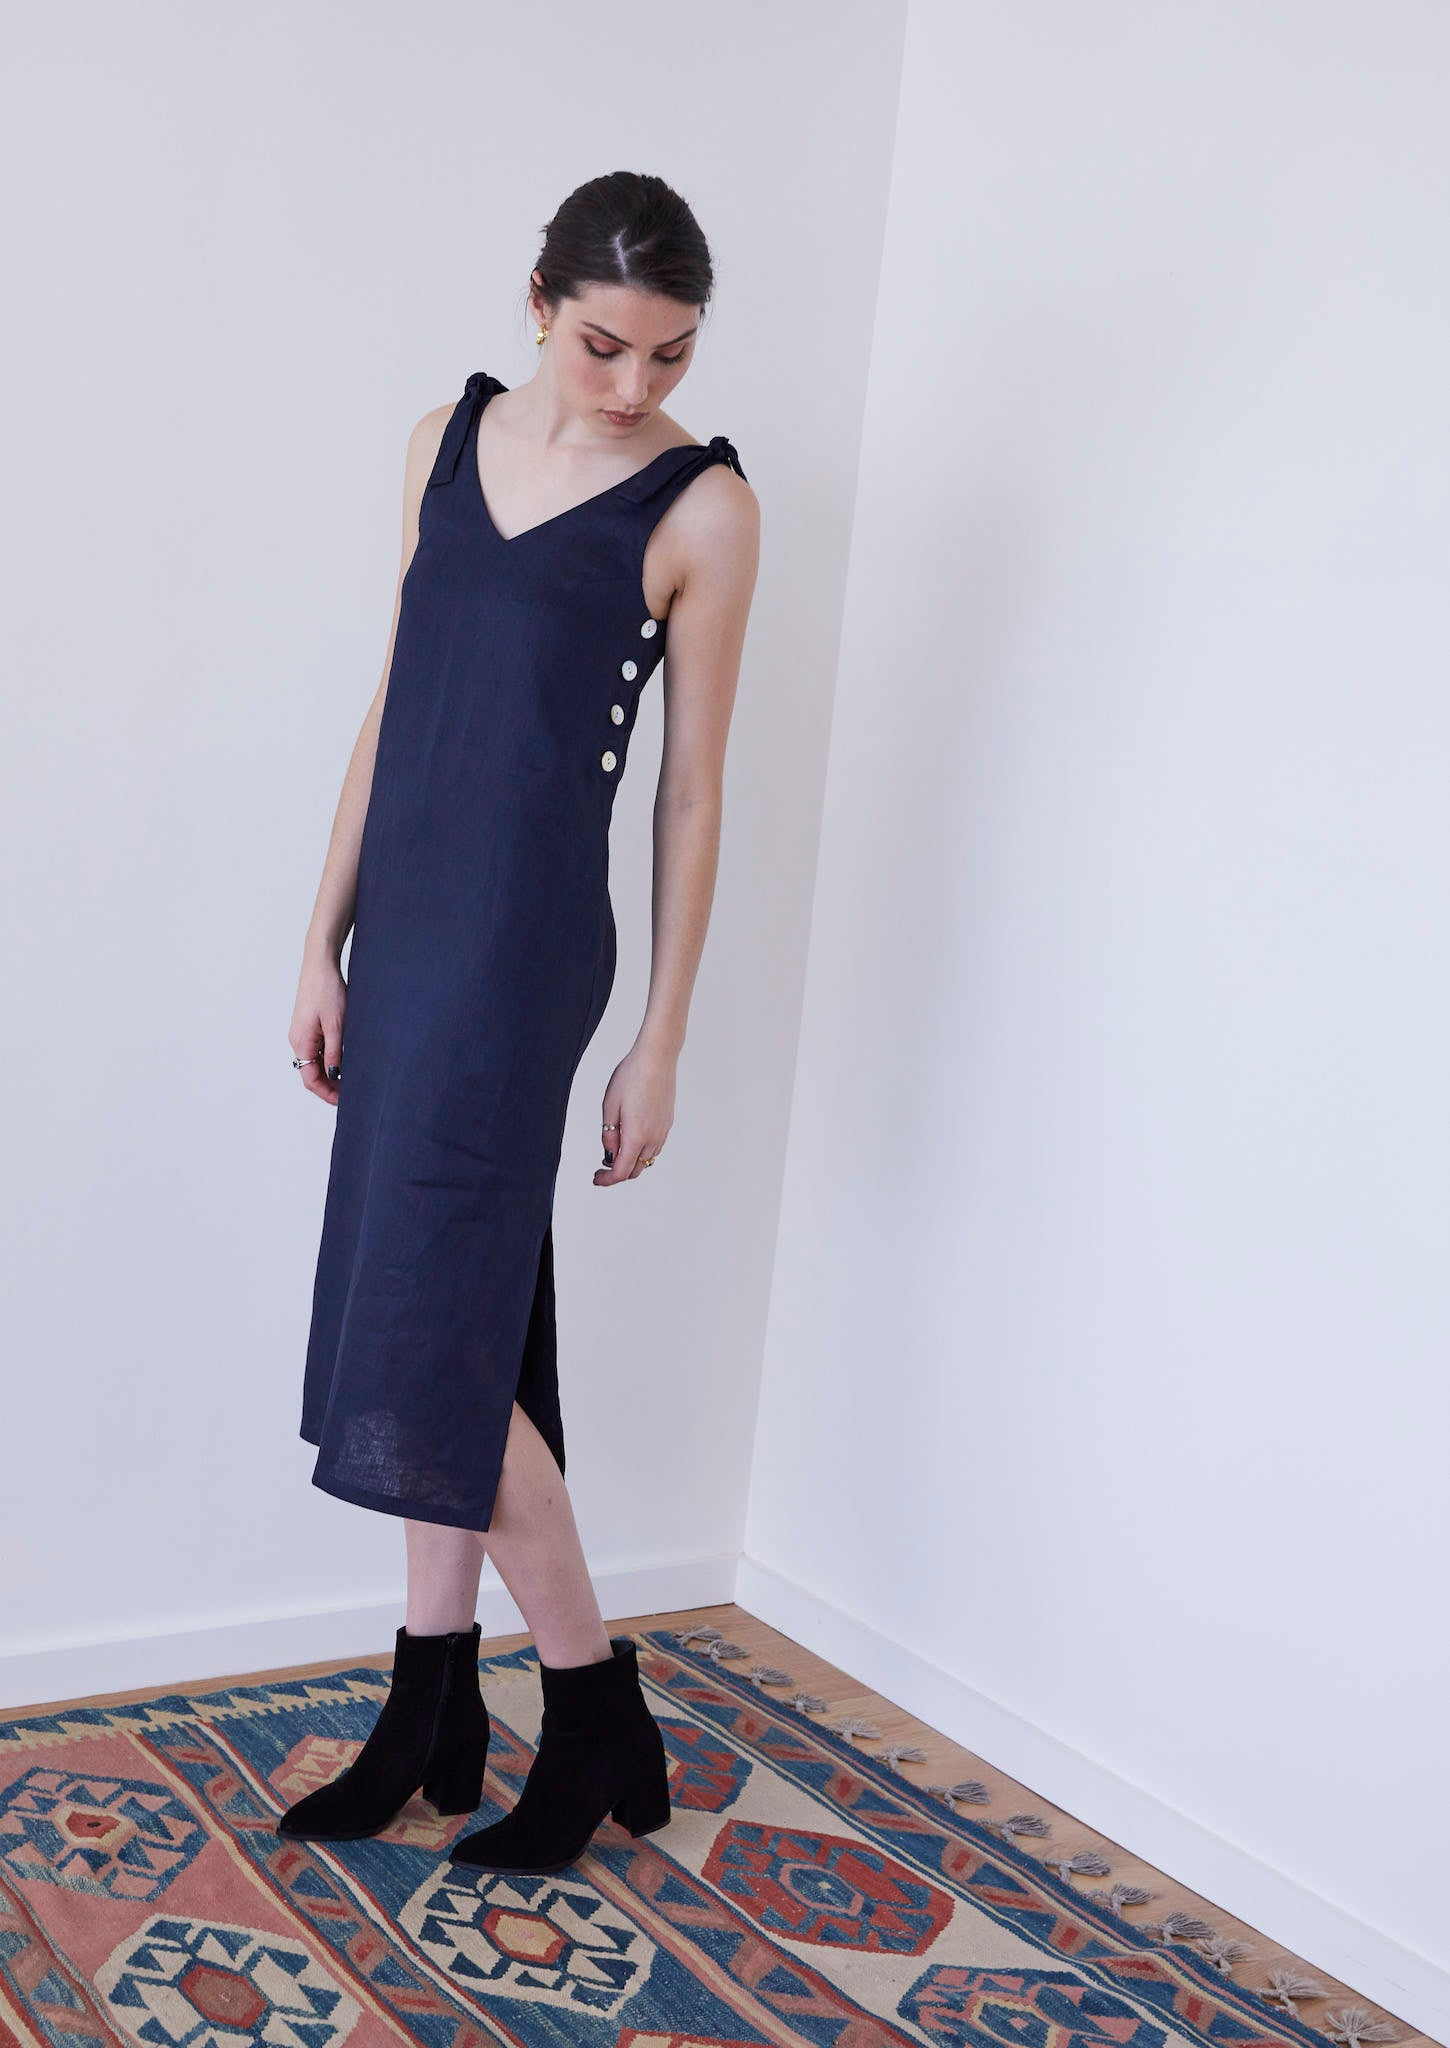 Bloom Baby Bloom Dress in Indigo - hej hej